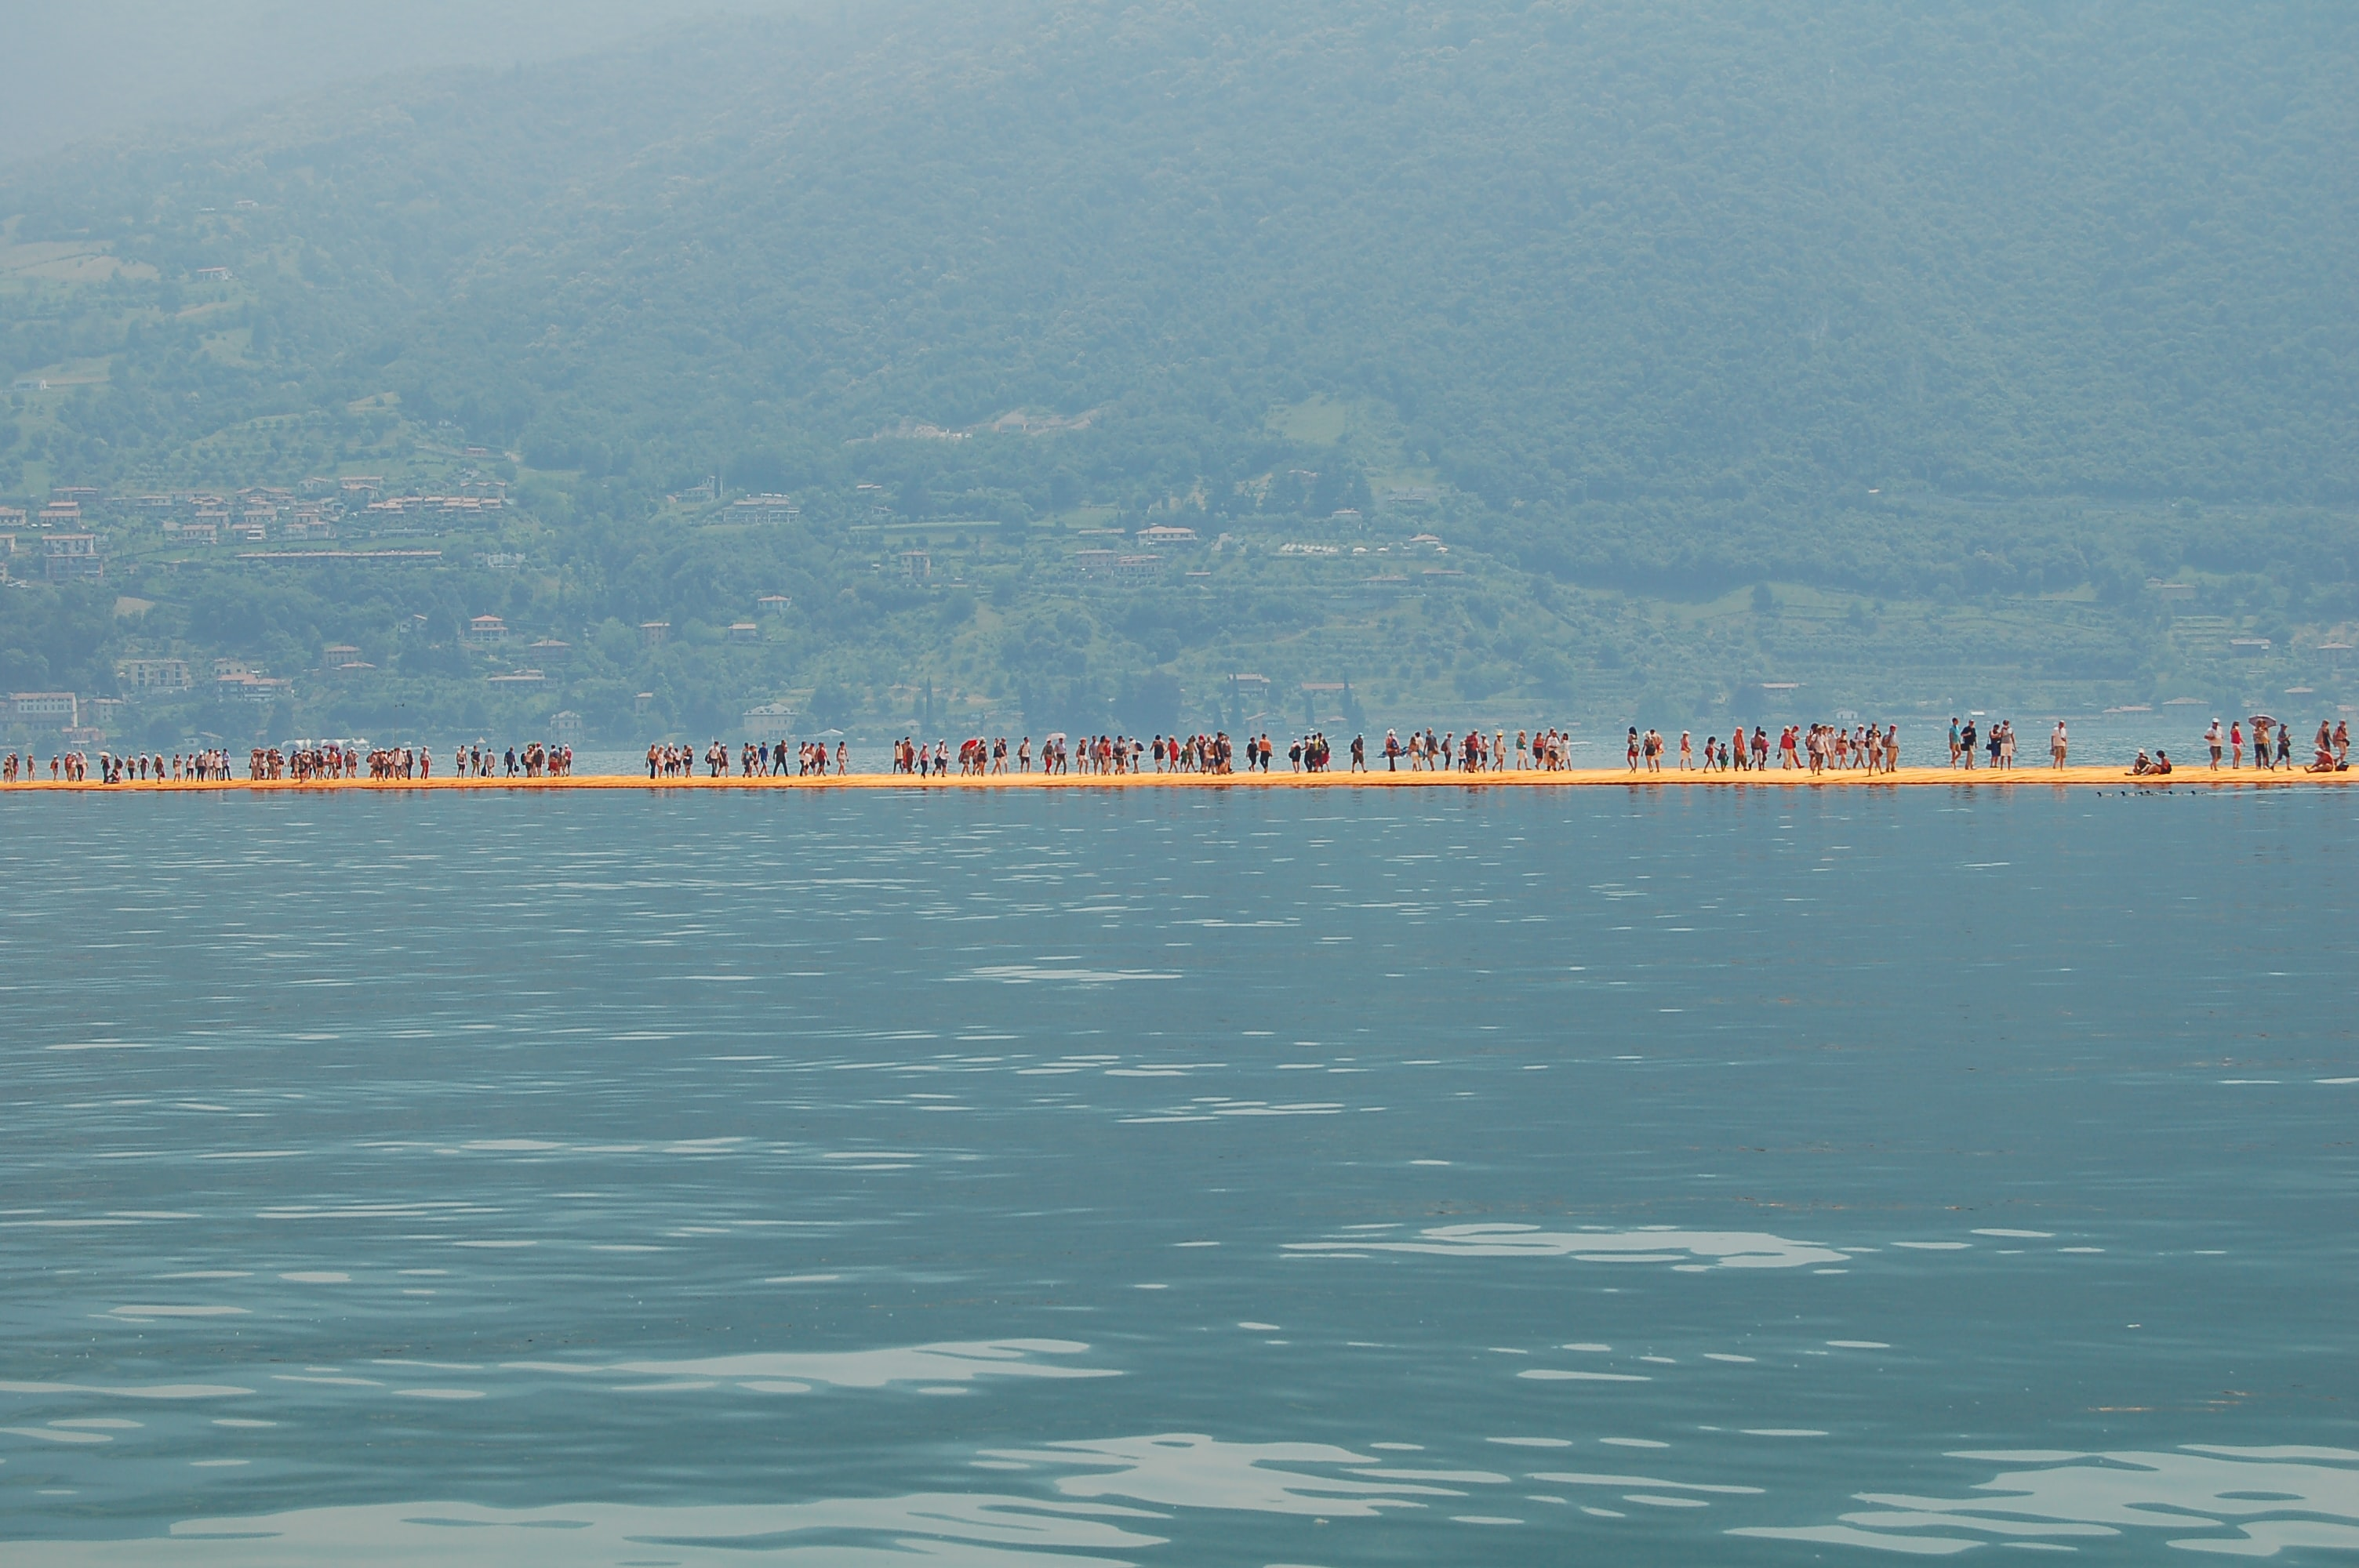 Groups of people standing on the walkway at The Floating Piers with buildings in the distance